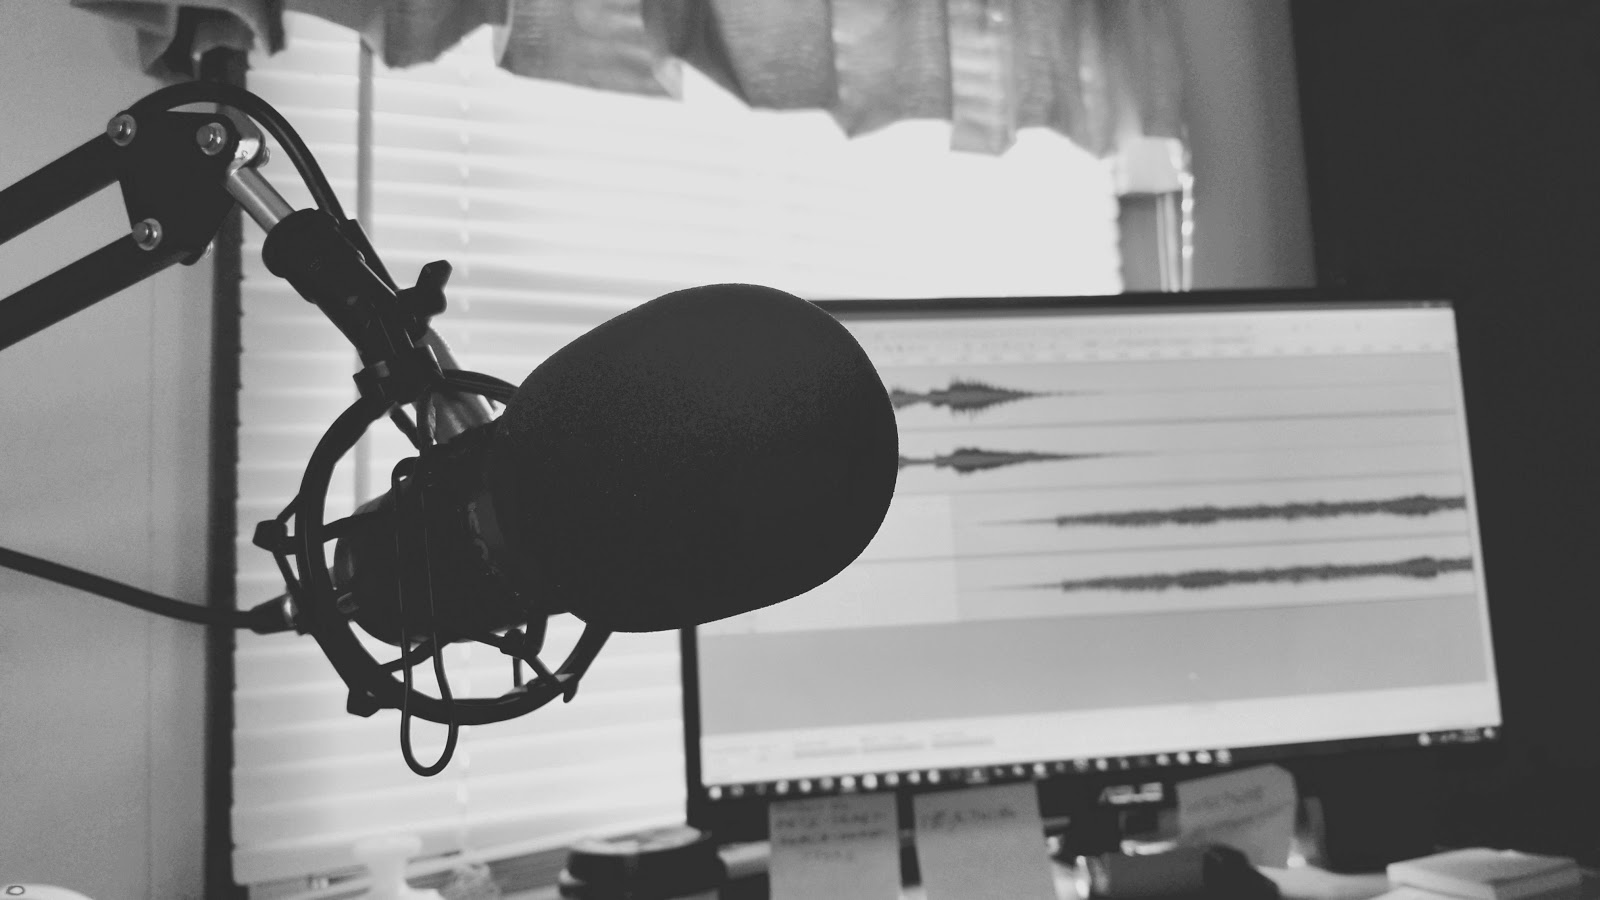 a mic in the left foreground and a monitor in the background that displays an audio recording